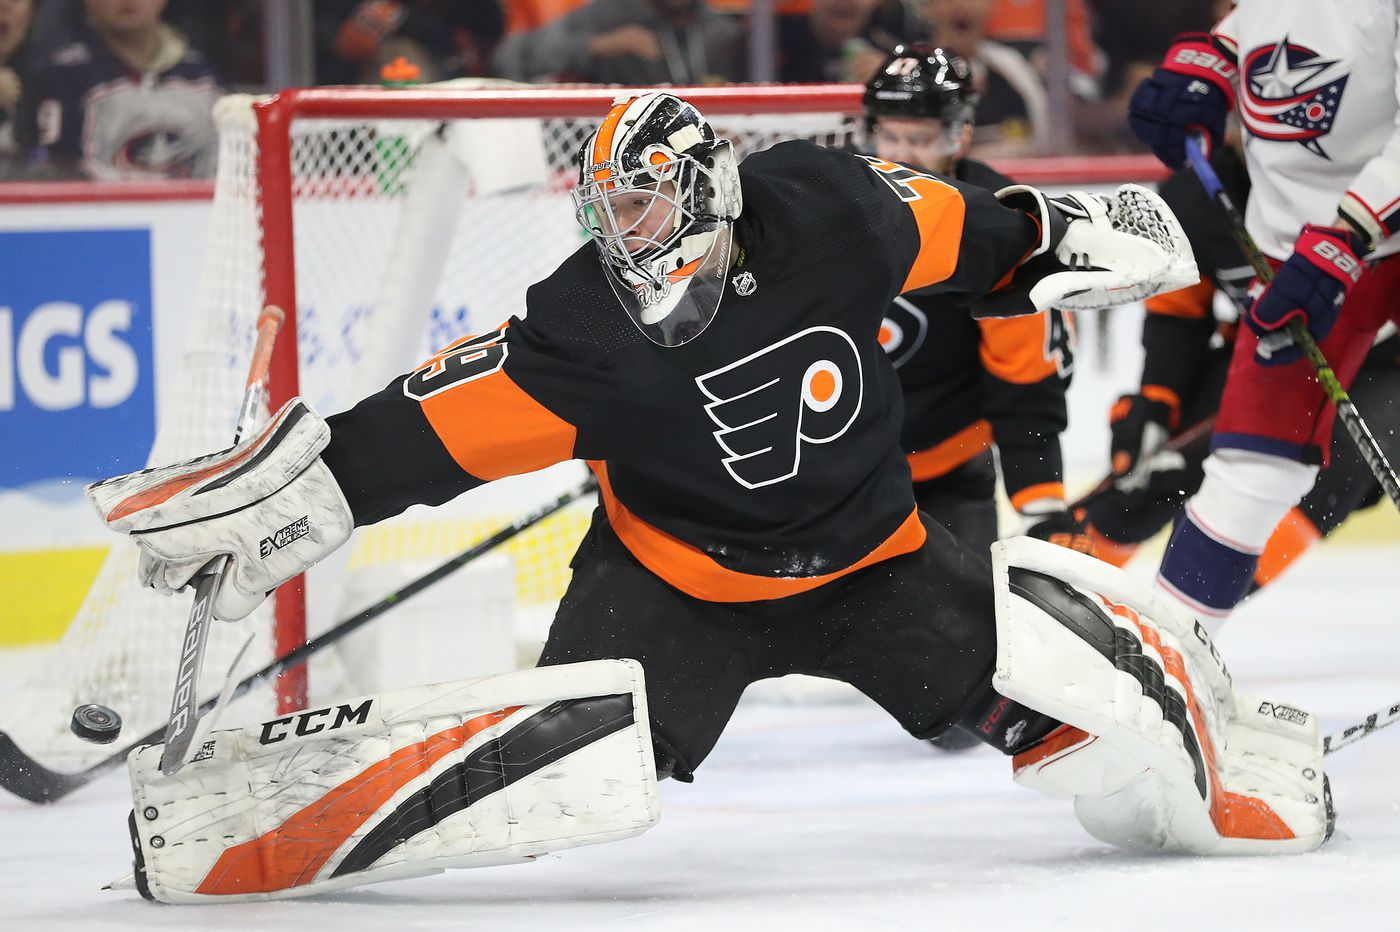 Carter Hart now Flyers' No. 1 goalie as Michal Neuvirth's injury forces team to claim backup